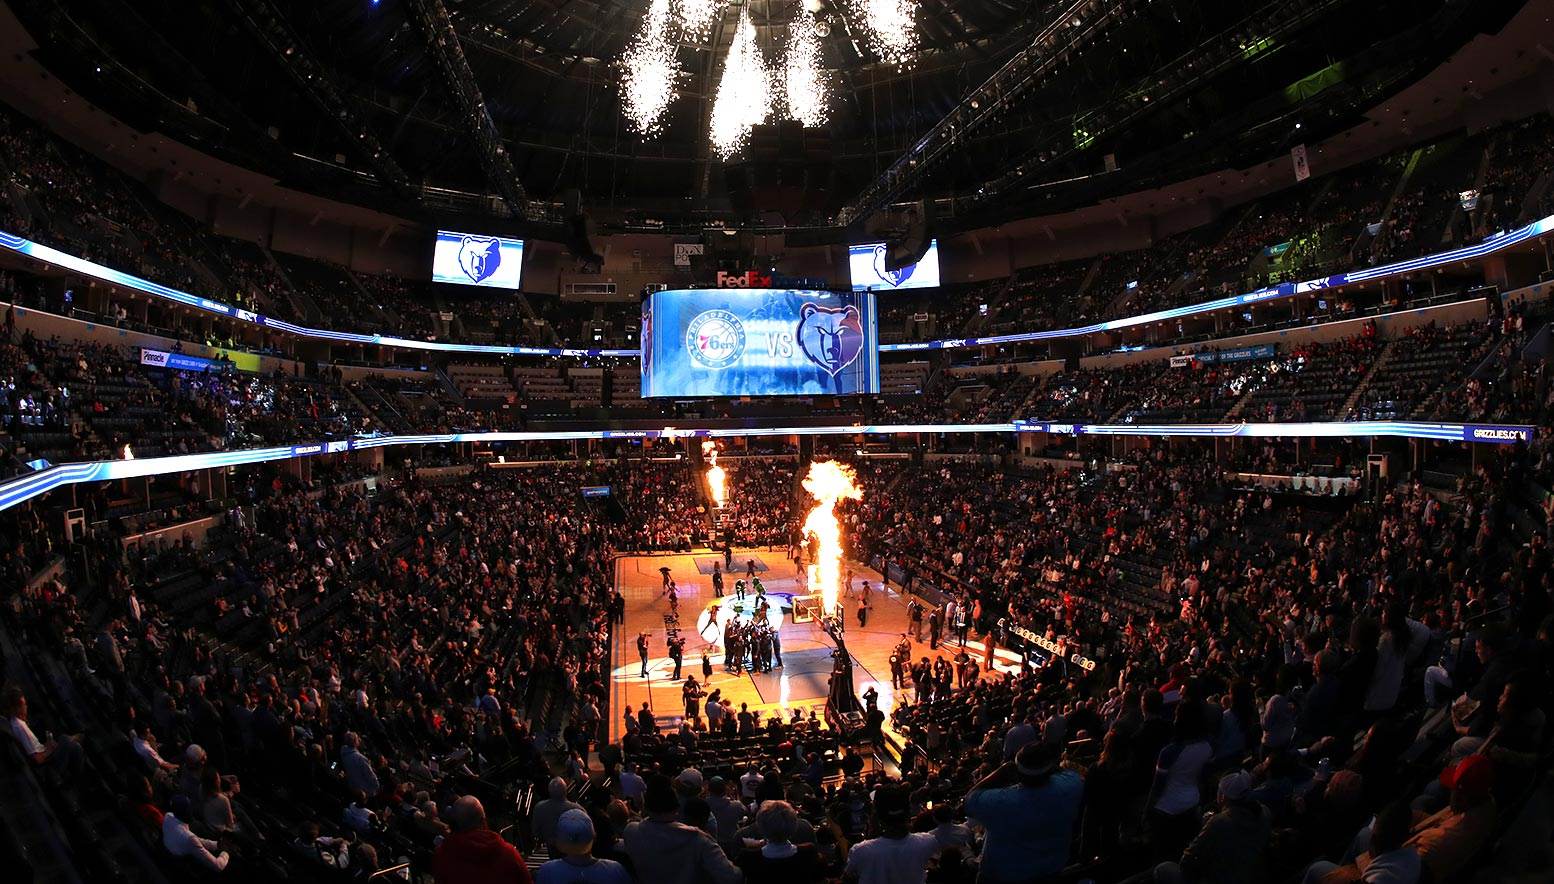 Grizzlies vs 76ers Arena Overall - Single Game Tickets